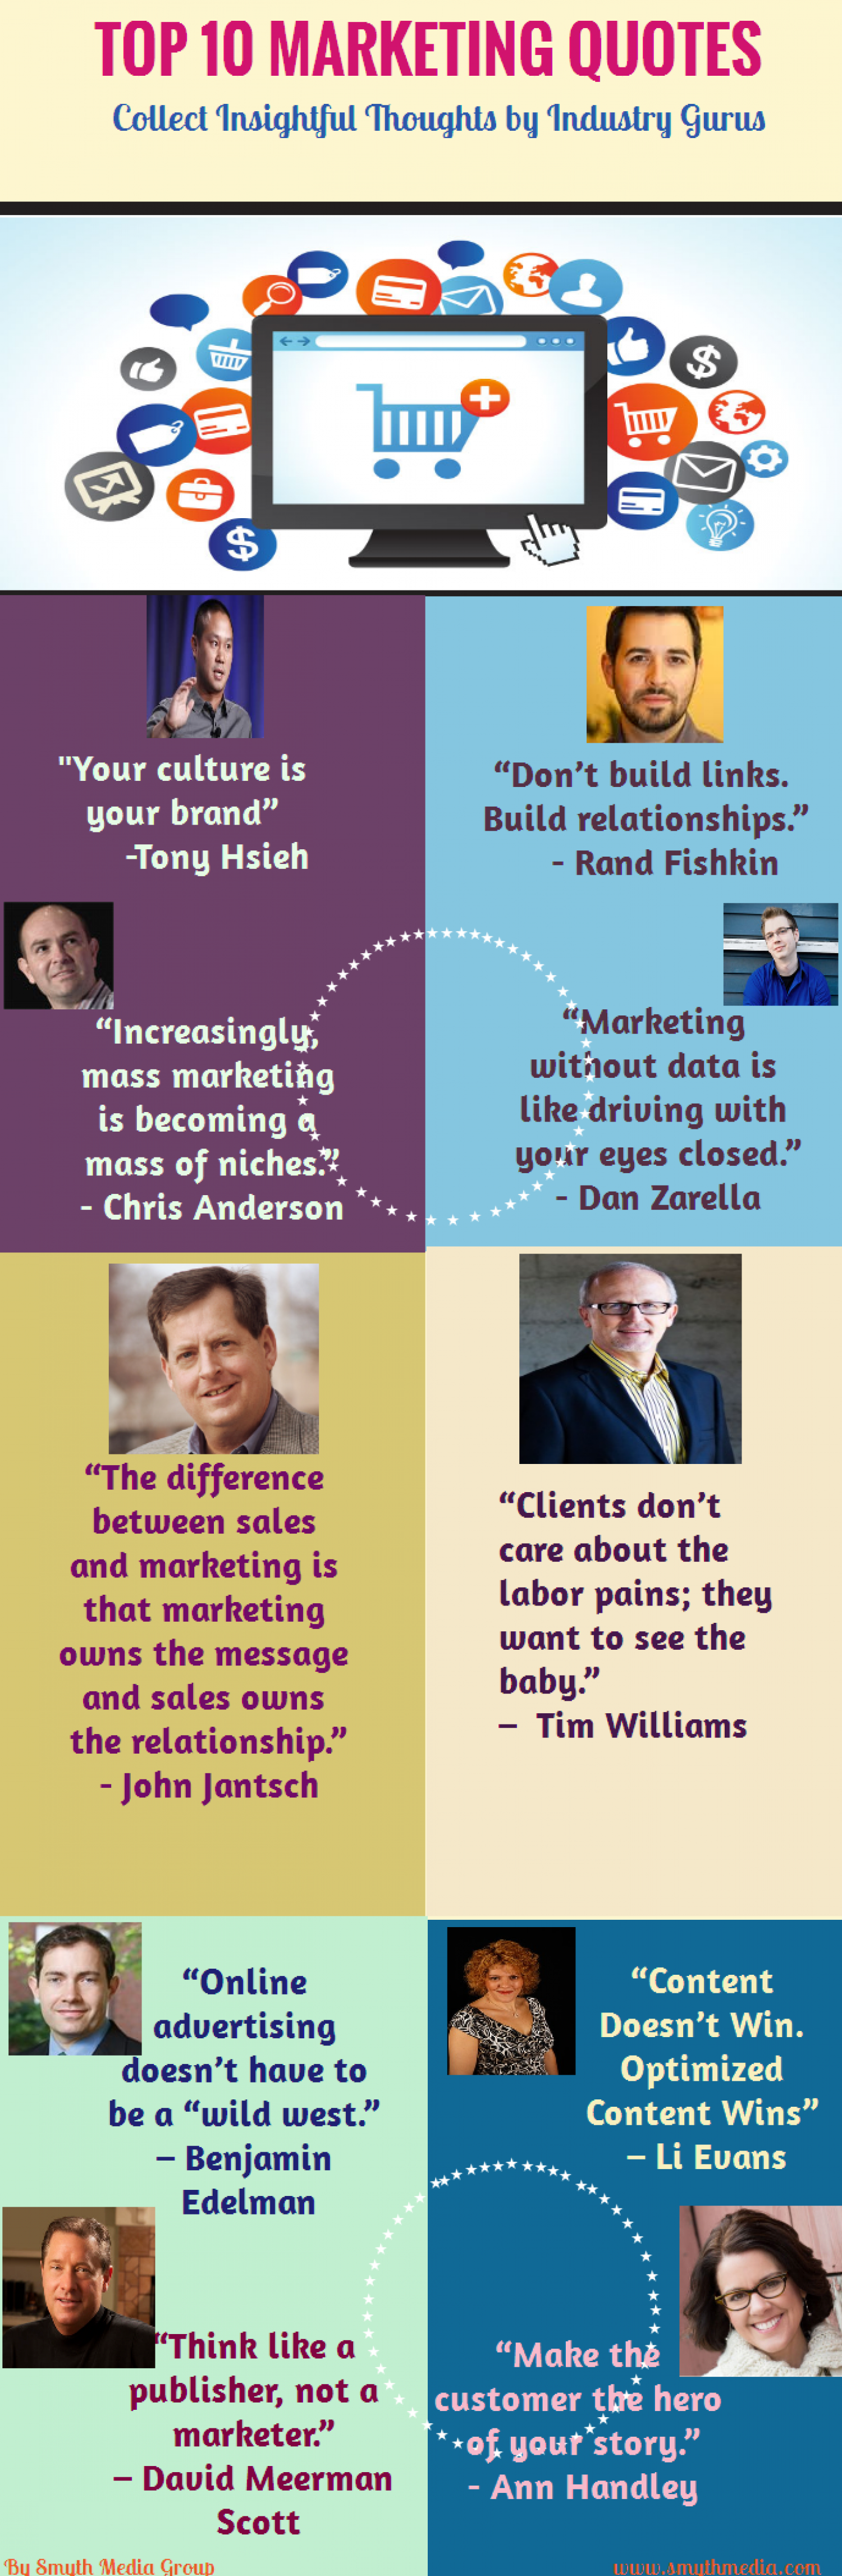 Top 10 Marketing Experts Quotes Infographic